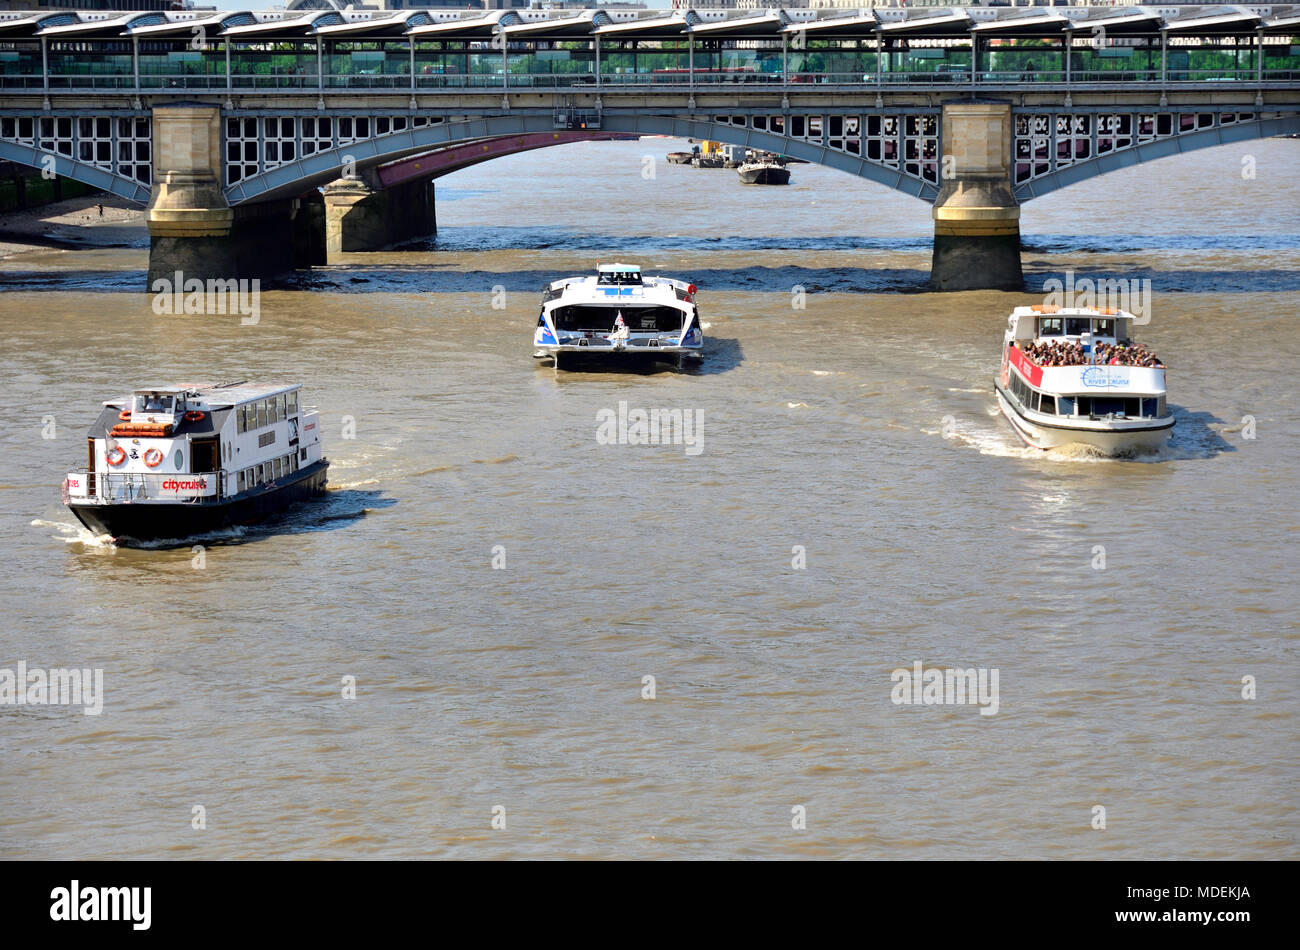 London, England, UK. Tourist cruise boats on the River Thames - Stock Image